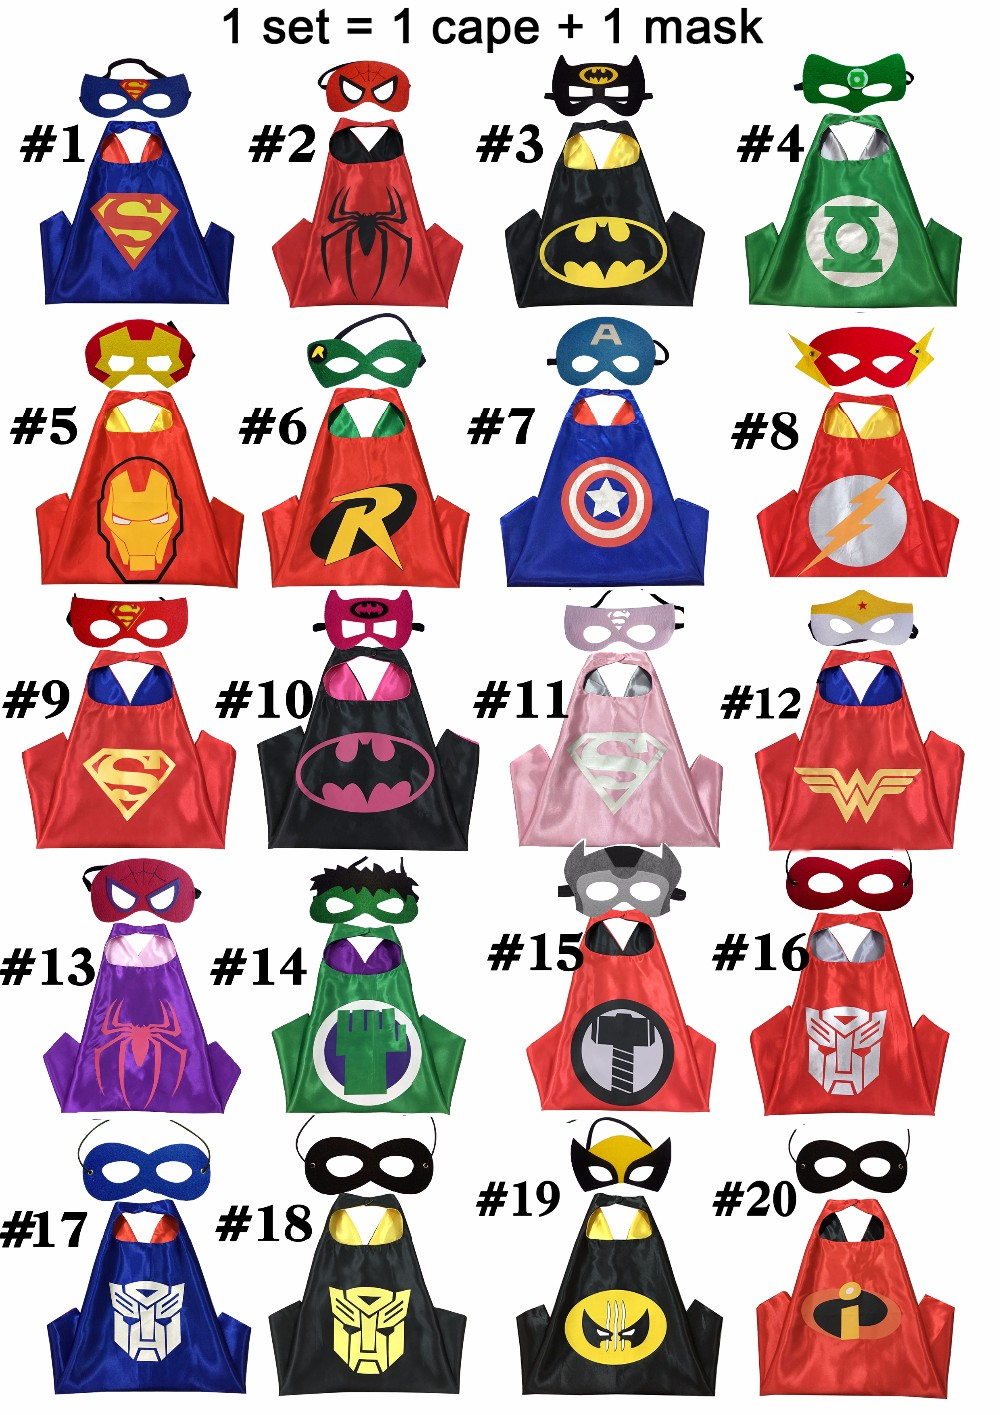 100 Kids Superhero Capes - Double sides Satin Fabric Super hero cape mask Children birthday party Gifts cosplay Costume Supplies